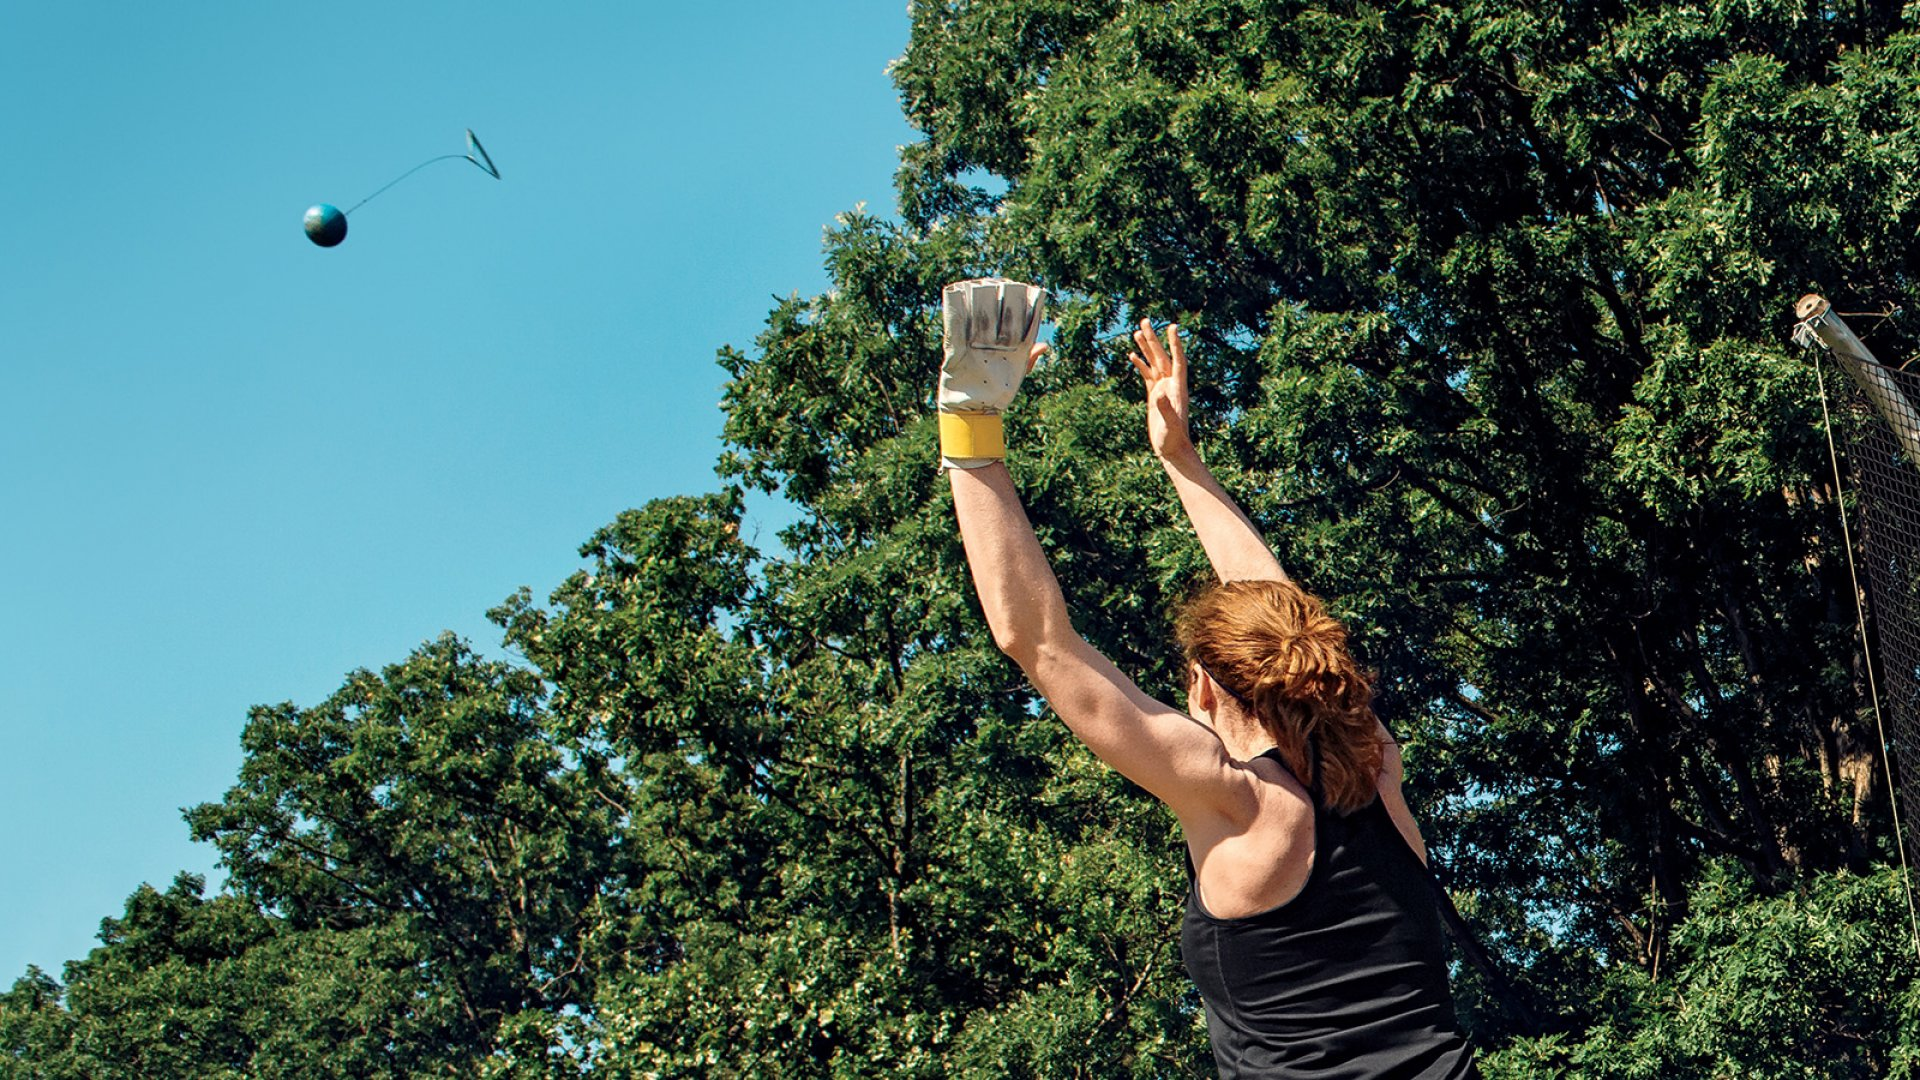 Beth Inglis at a hammer-throwing haunt in suburban Washington, D.C., launching her payload into space.